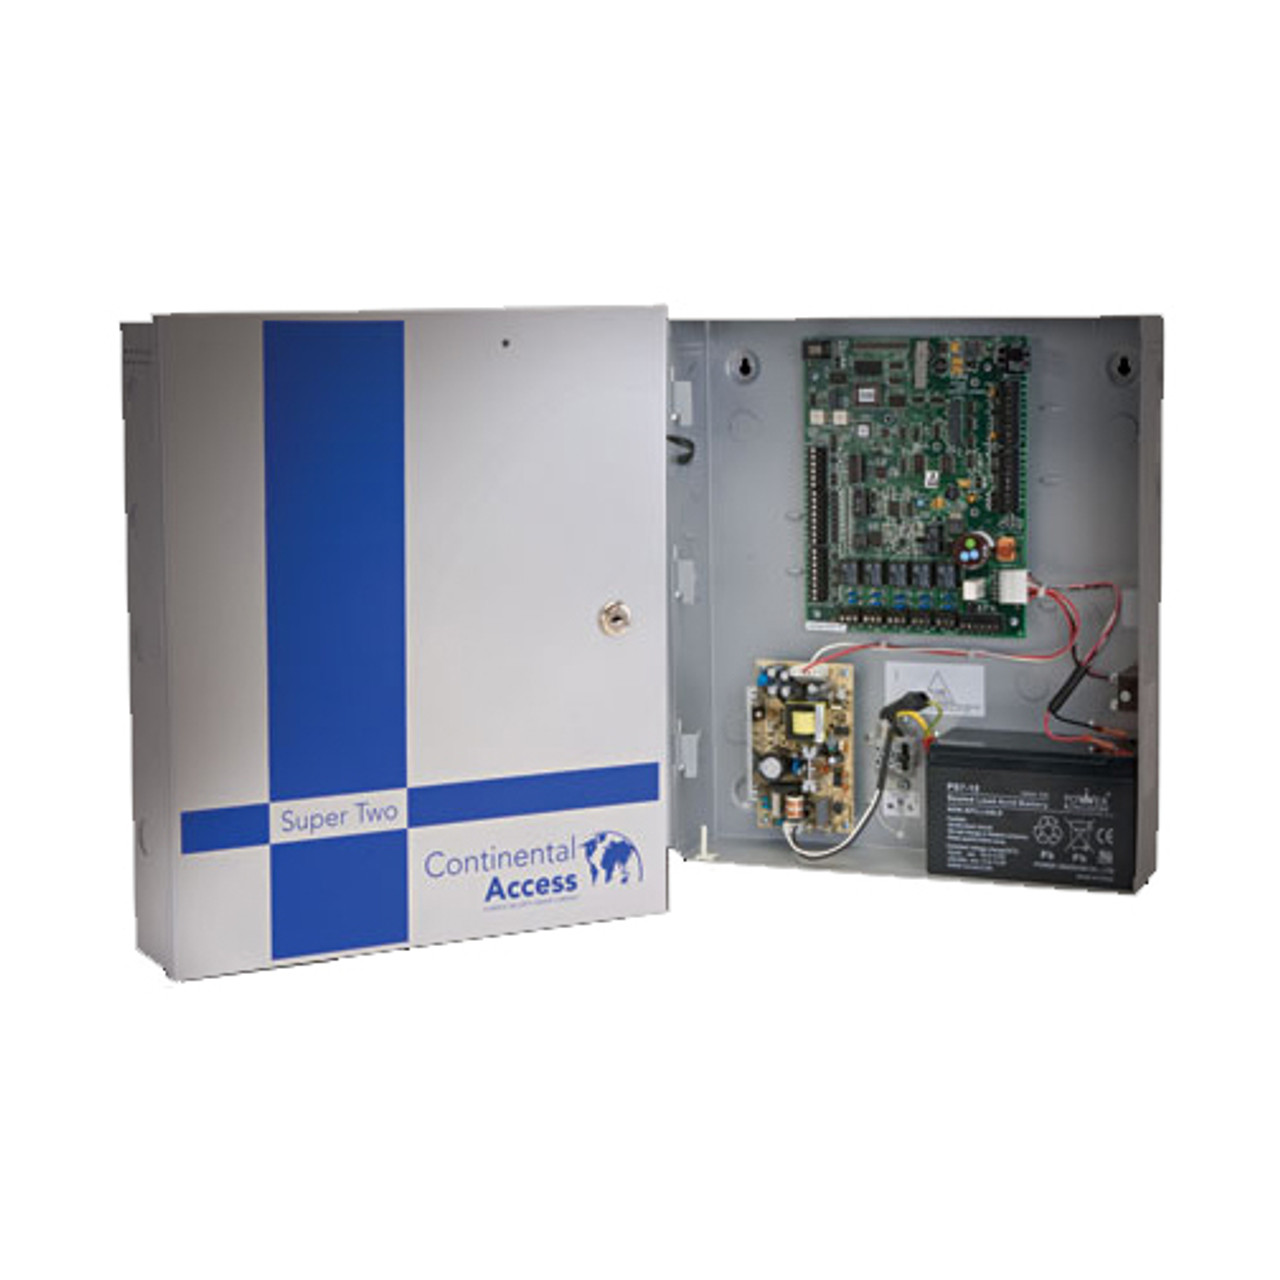 SuperTwo Control Panel - 2 Door Controller  sc 1 st  Smarter Building Tech & CICP1300 Continental Access SuperTwo Control Panel - 2 Door Controller